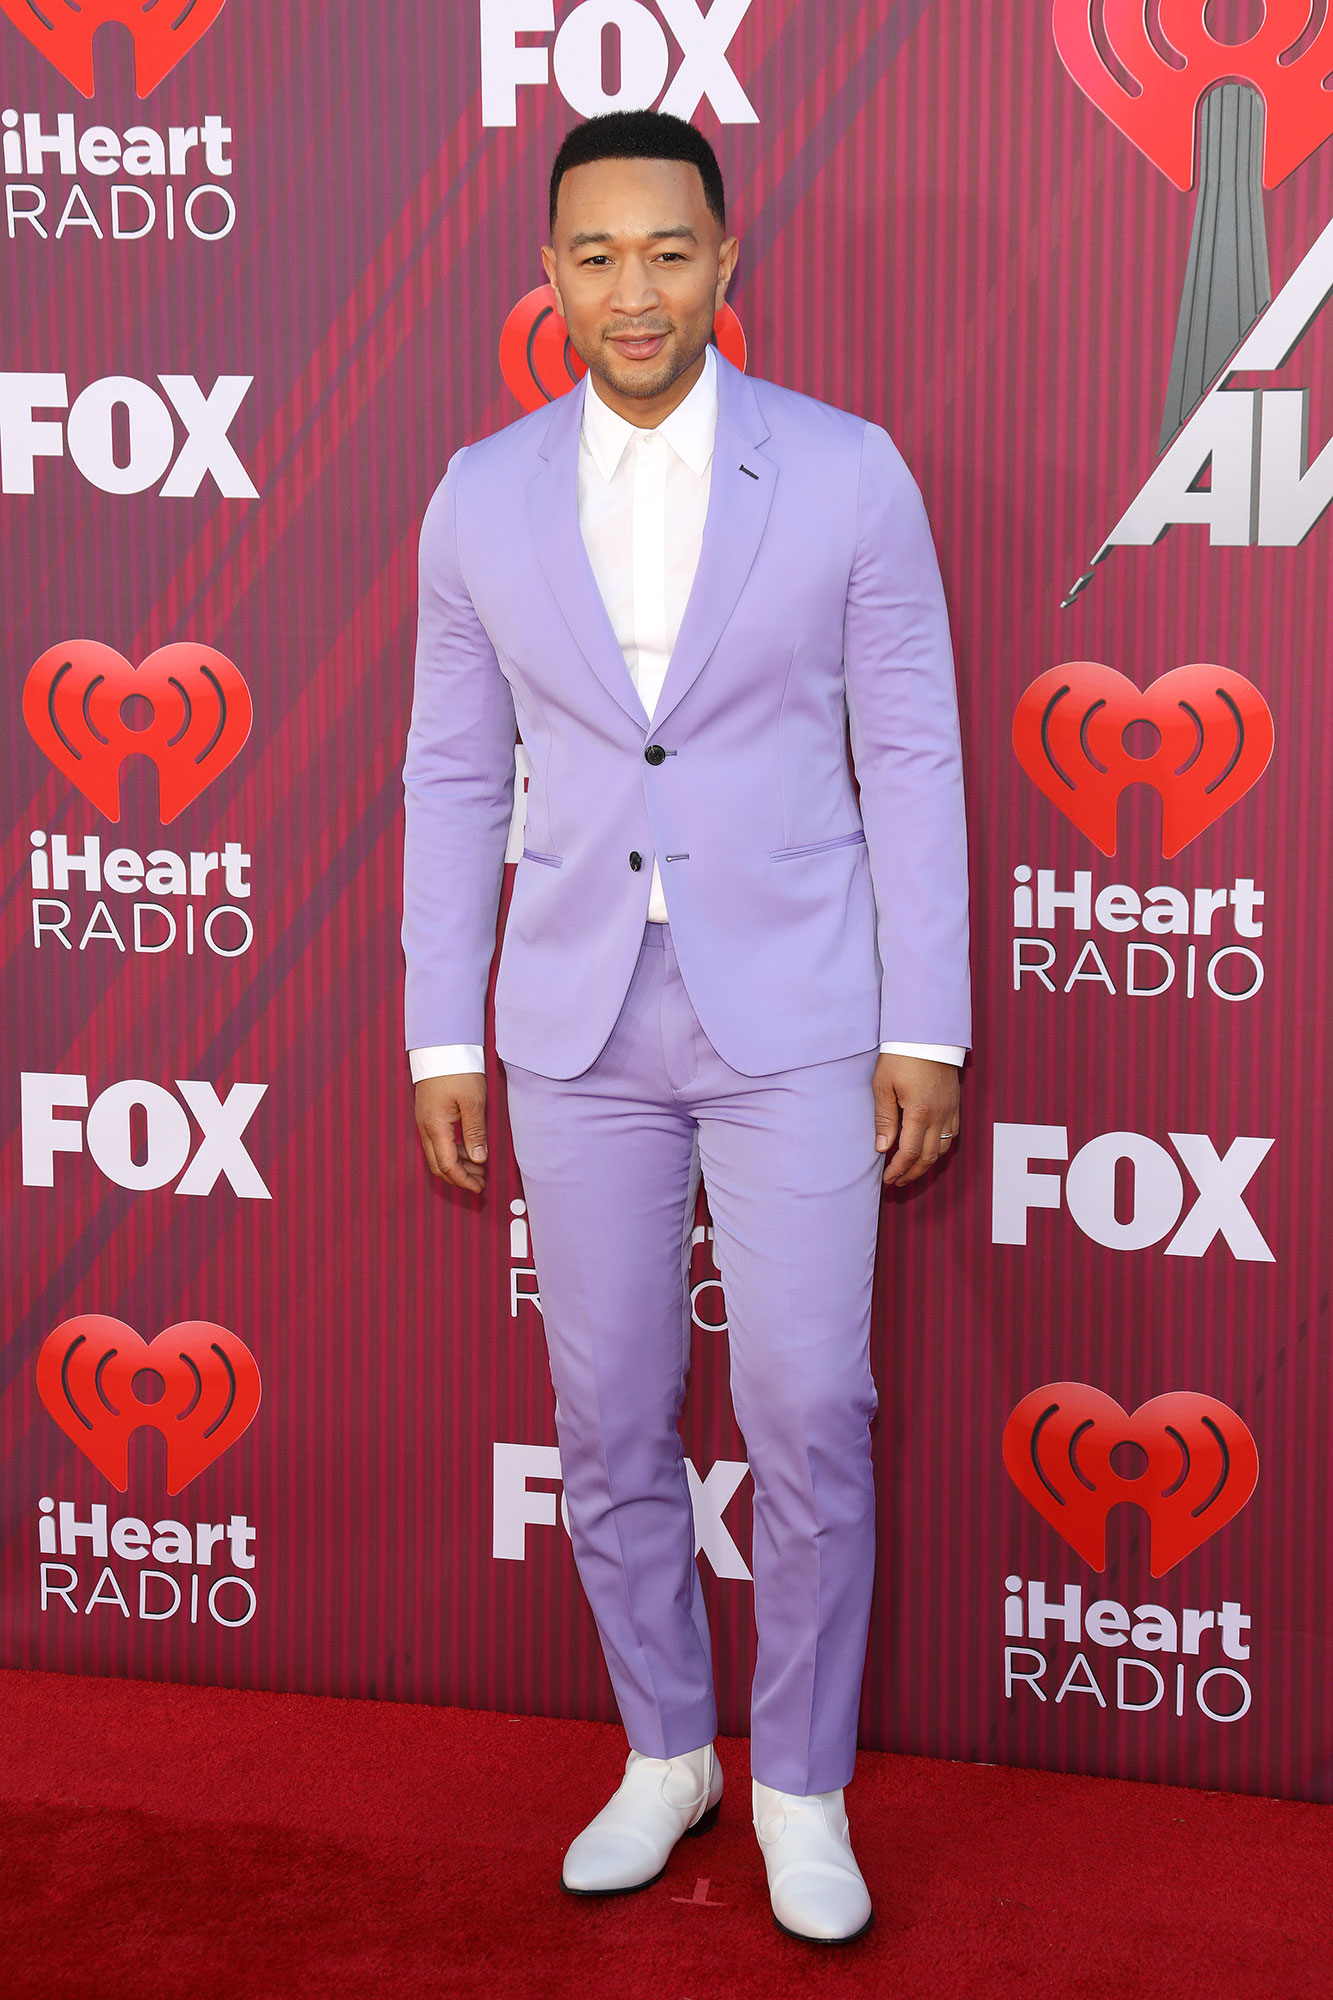 John Legend on College Scam - John Legend arrives at the 2019 iHeartRadio Music Awards which broadcasted live on FOX at Microsoft Theater on March 14, 2019 in Los Angeles, California.